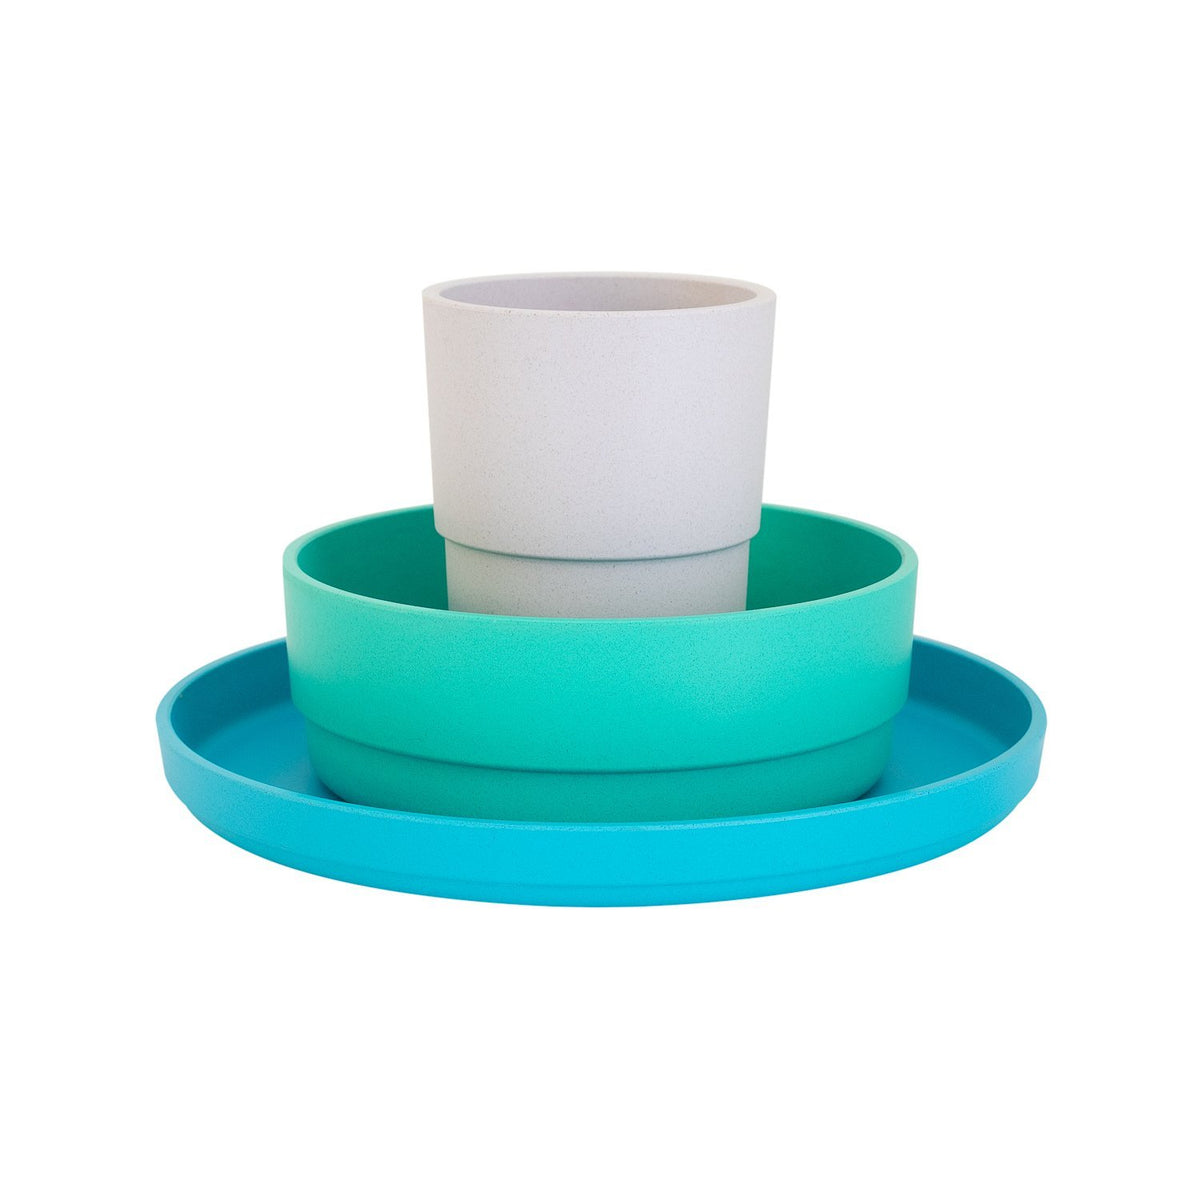 Bobo & Boo Plant Based Dinnerware Set (3 piece set)